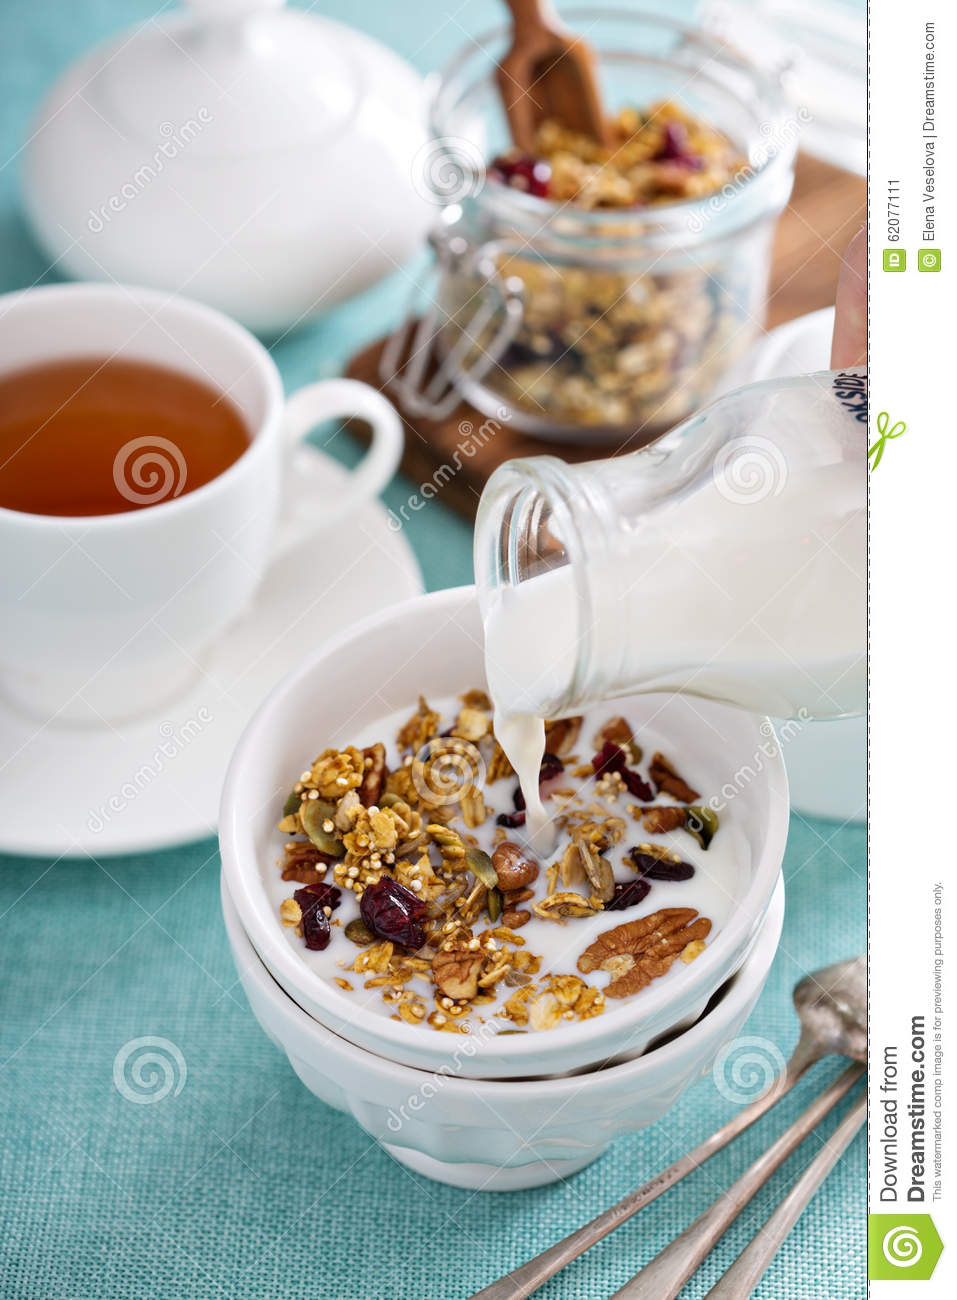 granola faite maison avec le quinoa et la canneberge photo stock image 62077111. Black Bedroom Furniture Sets. Home Design Ideas